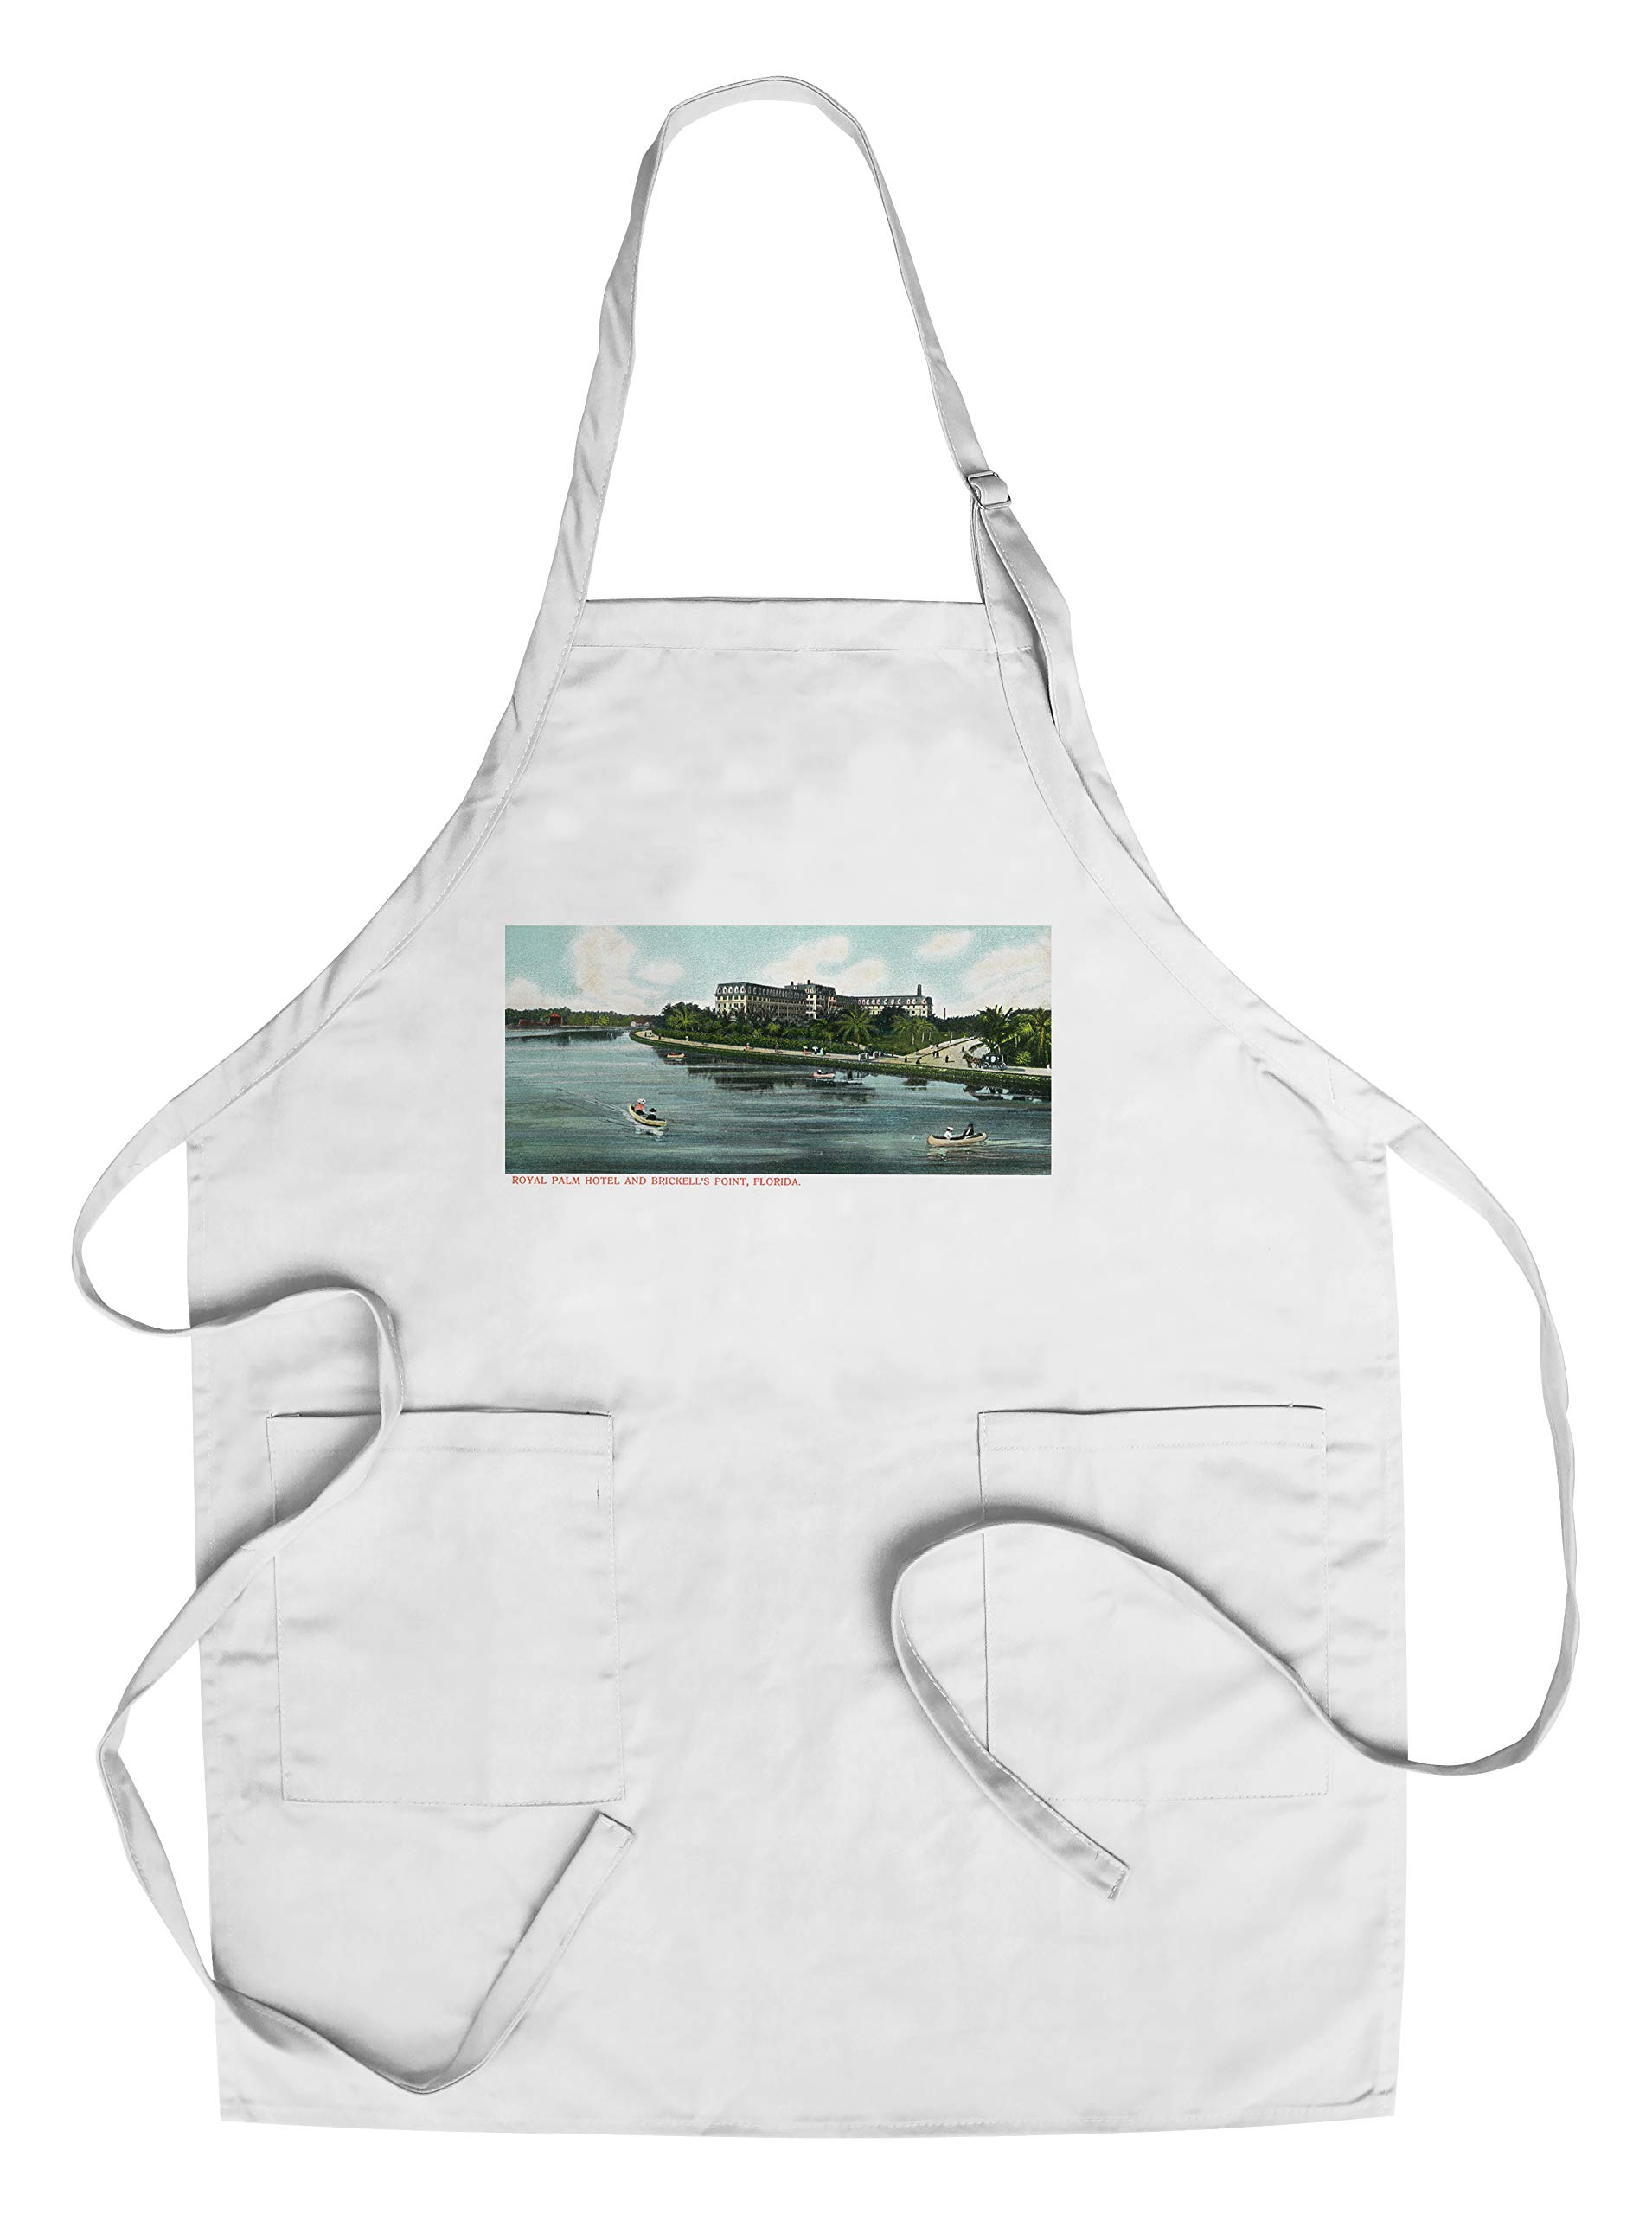 Miami, Florida - Brickell's Point; Royal Palm Hotel View (Cotton/Polyester Chef's Apron)